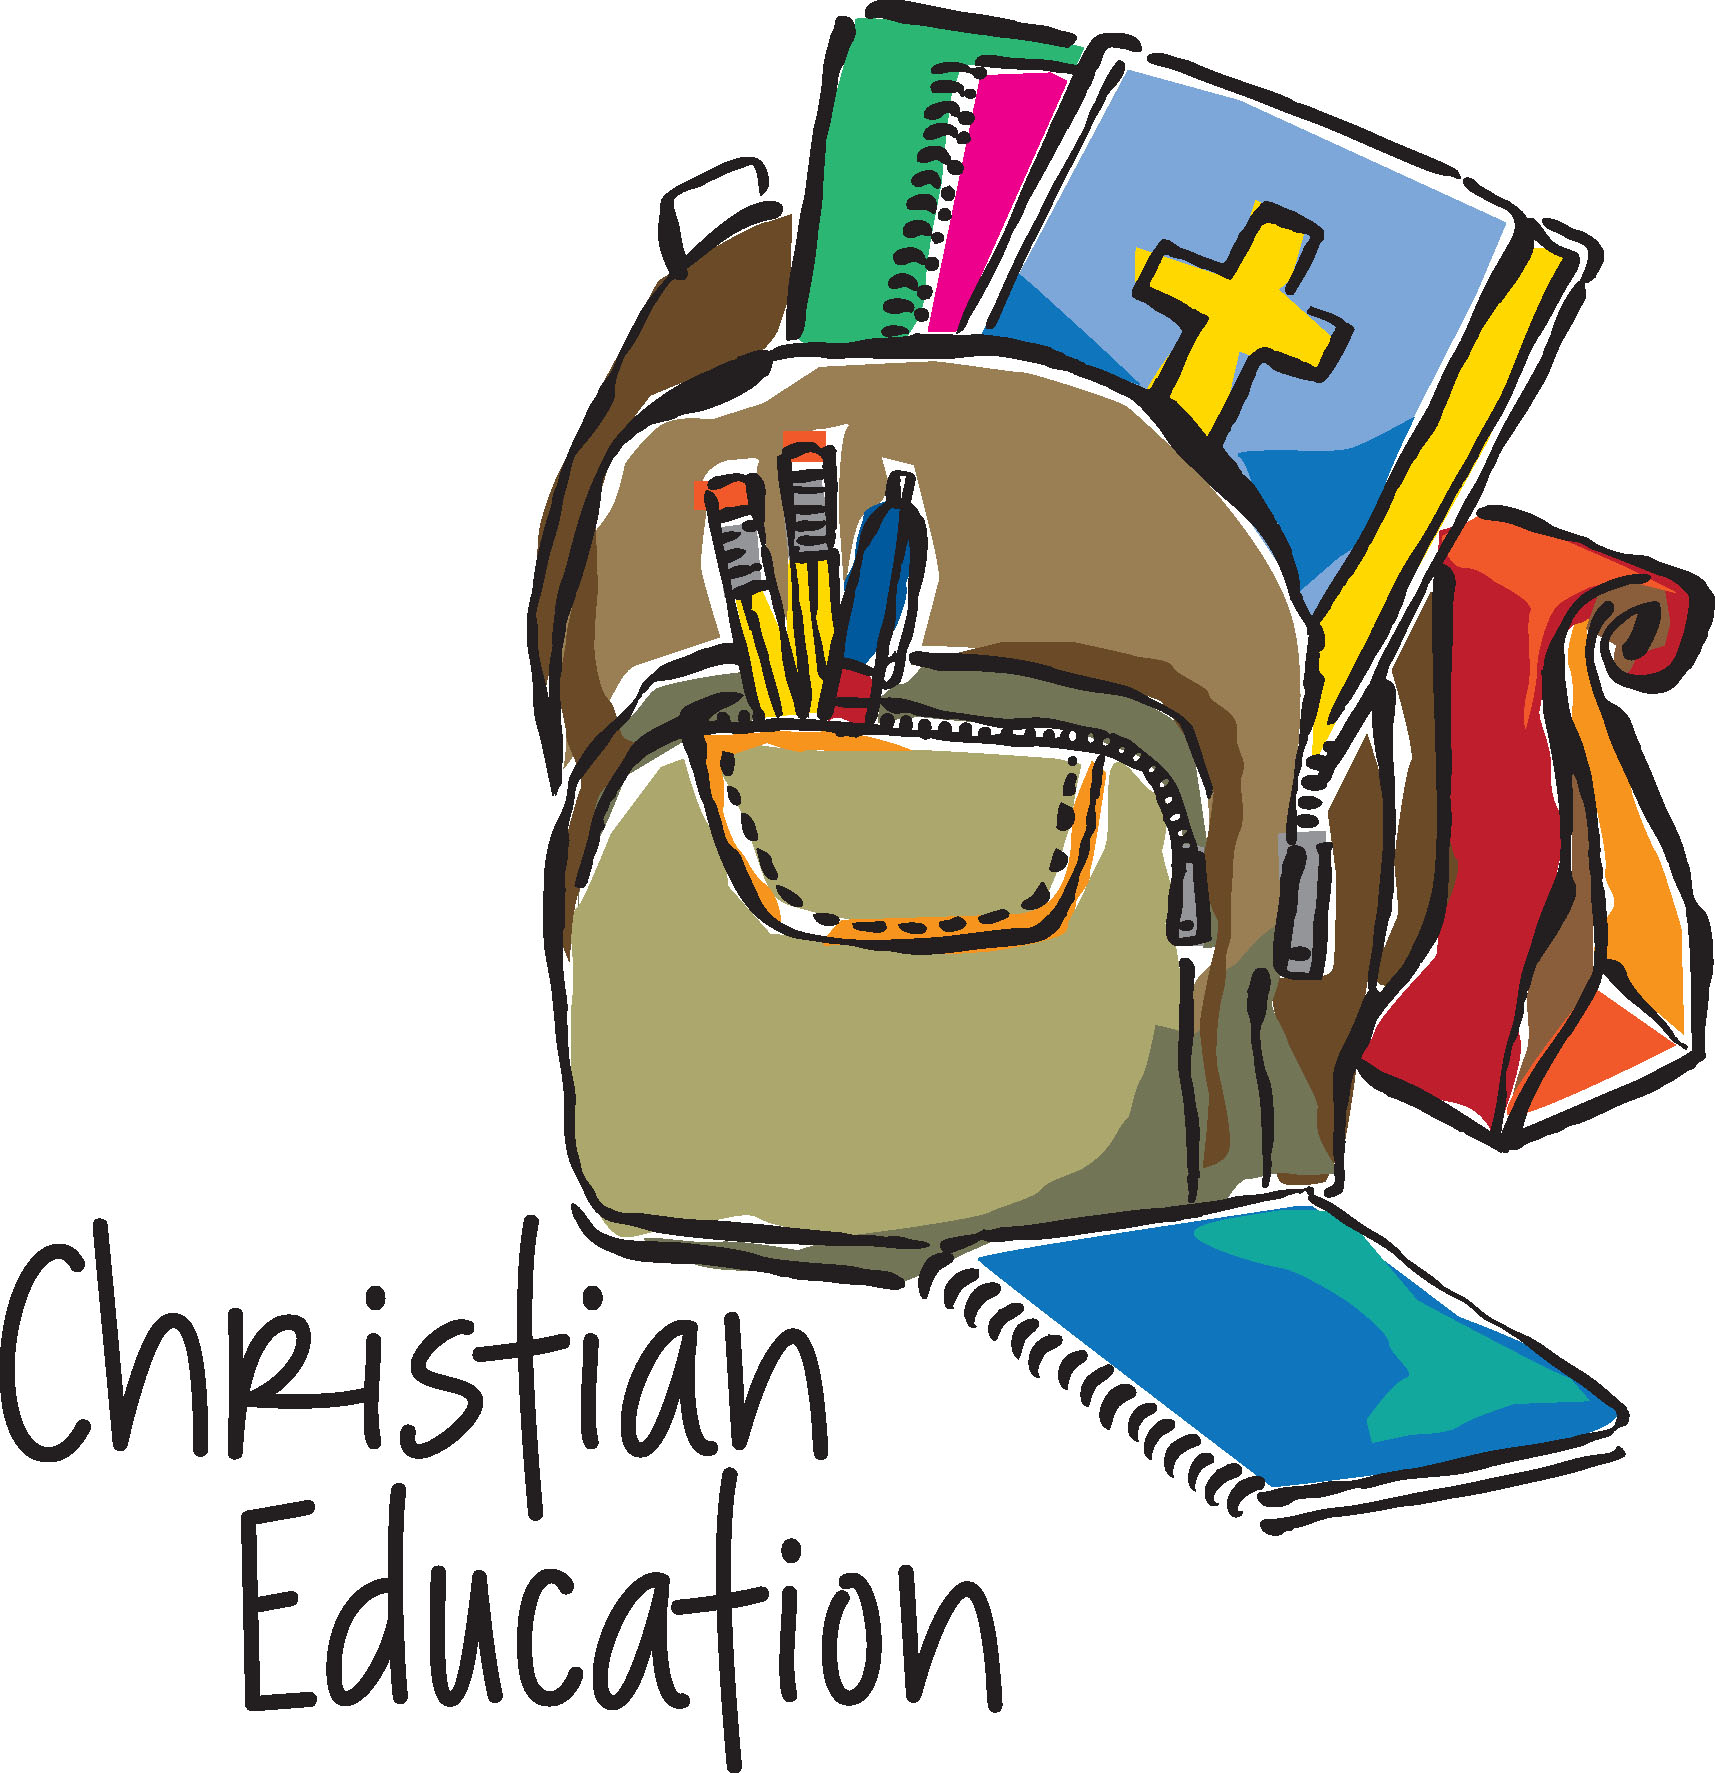 Religious back to school clipart svg free library School clipart education clip art school for teachers 4 - Clipartix svg free library